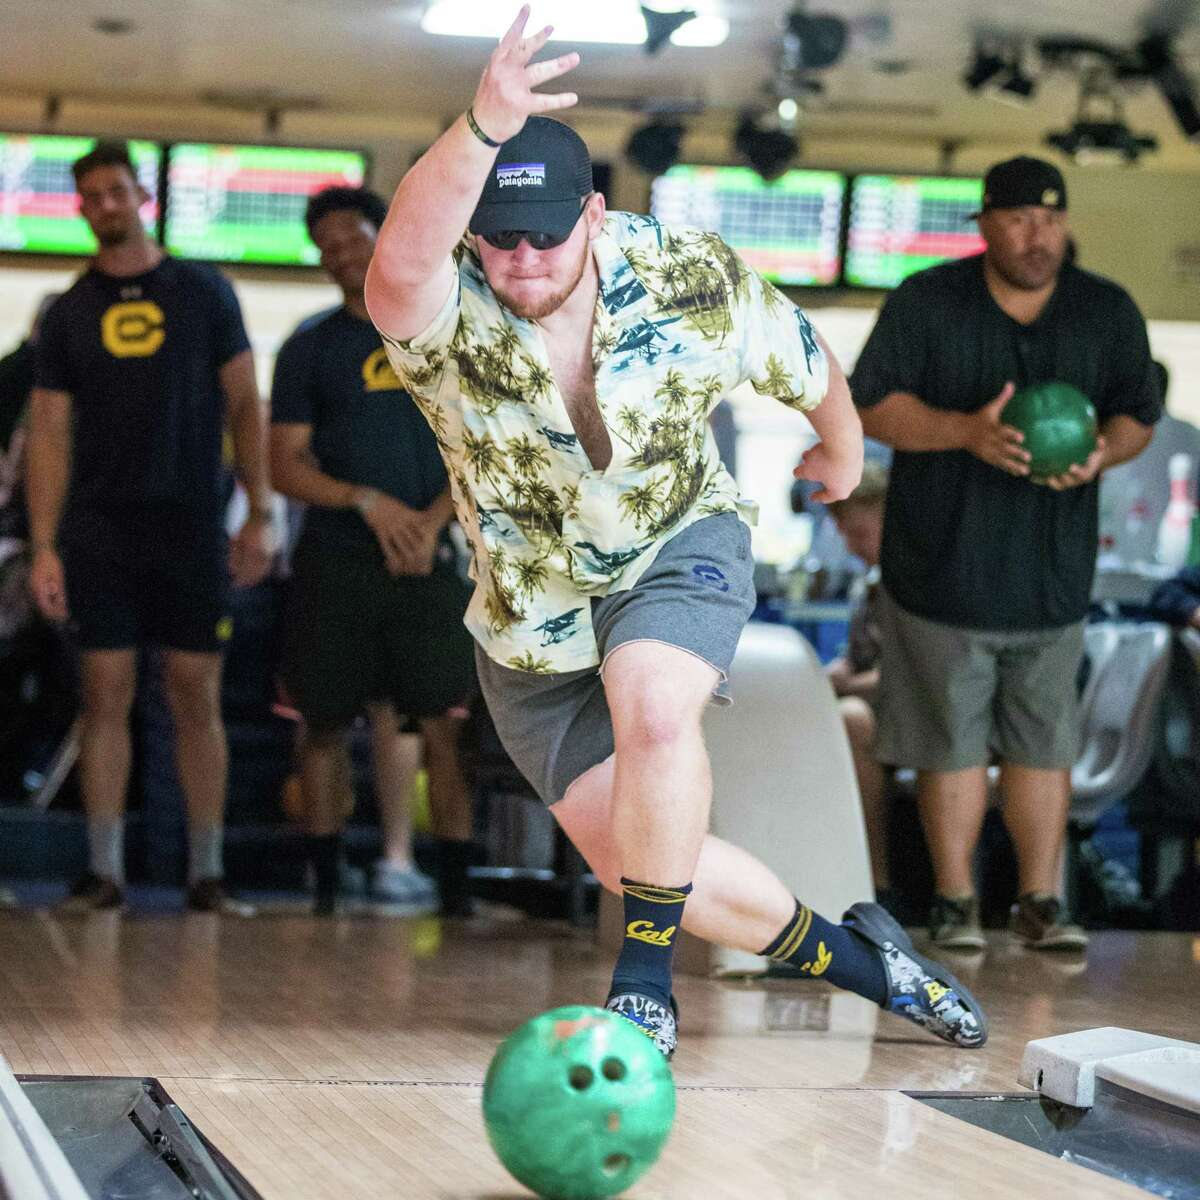 Michael Saffell brings his lineman mind-set to the bowling al ley and made sure his squad won at a team-wide bowling night.